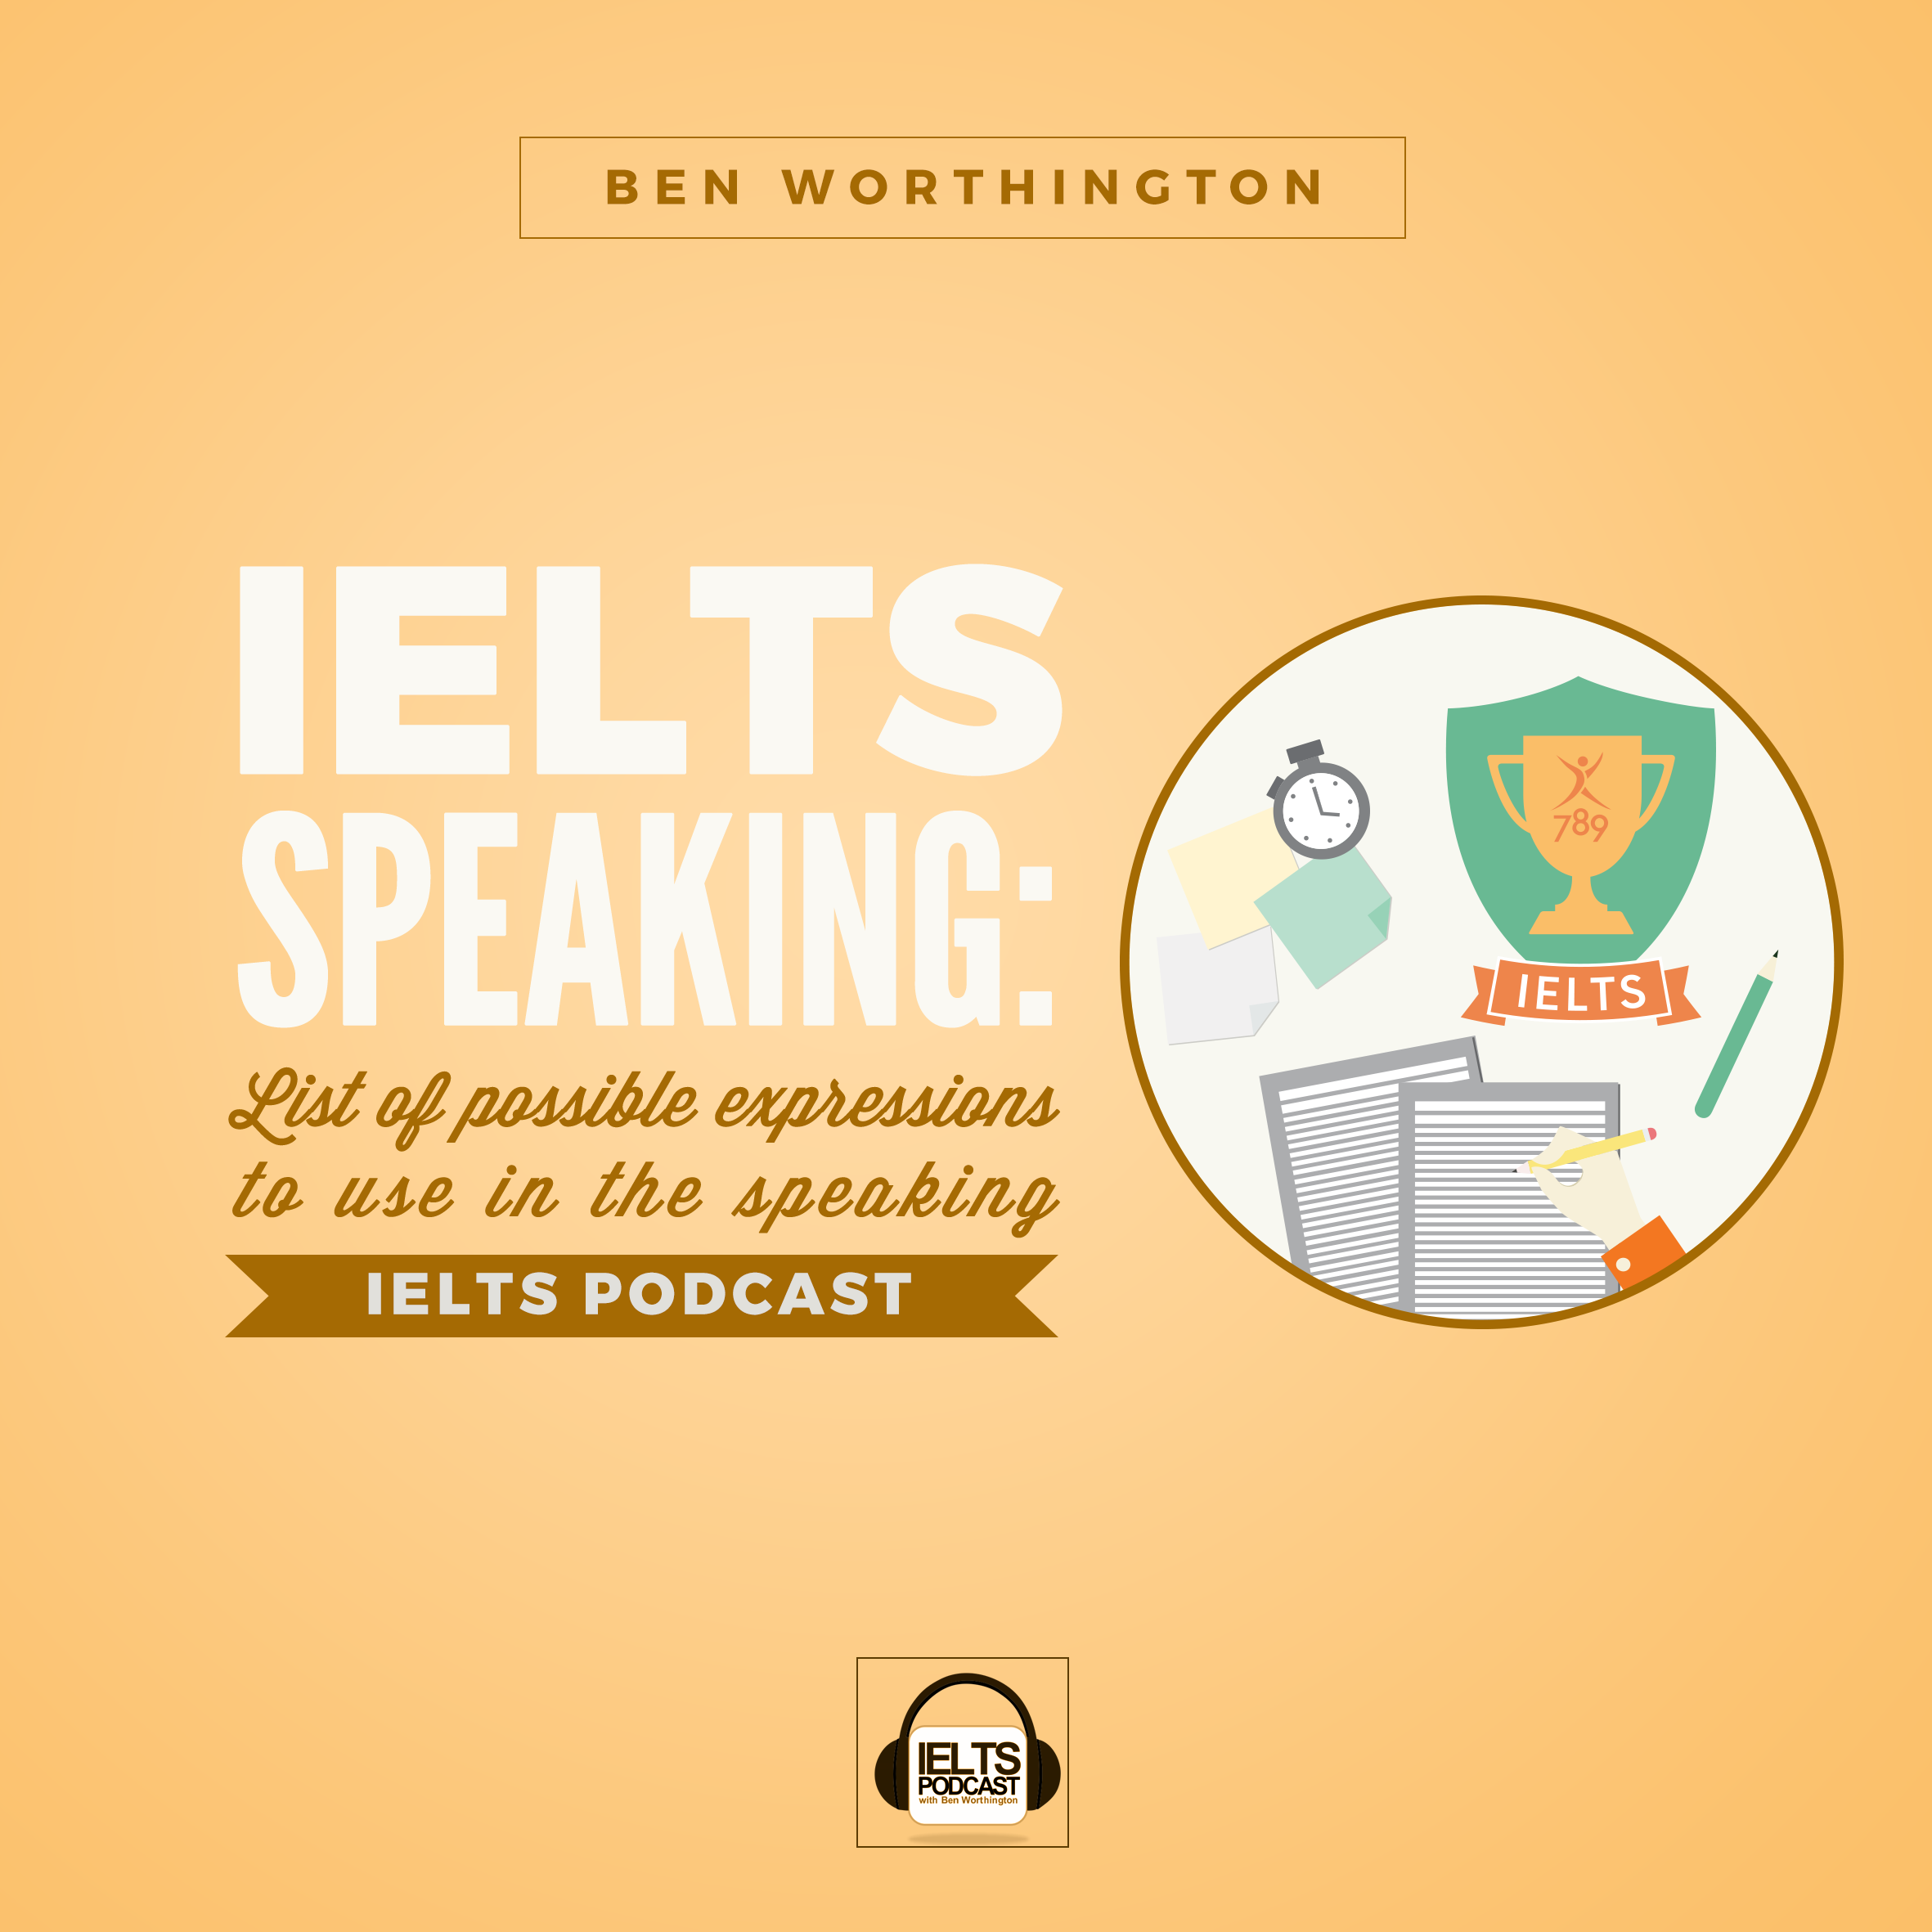 Leave Your Email For Free Ielts Material